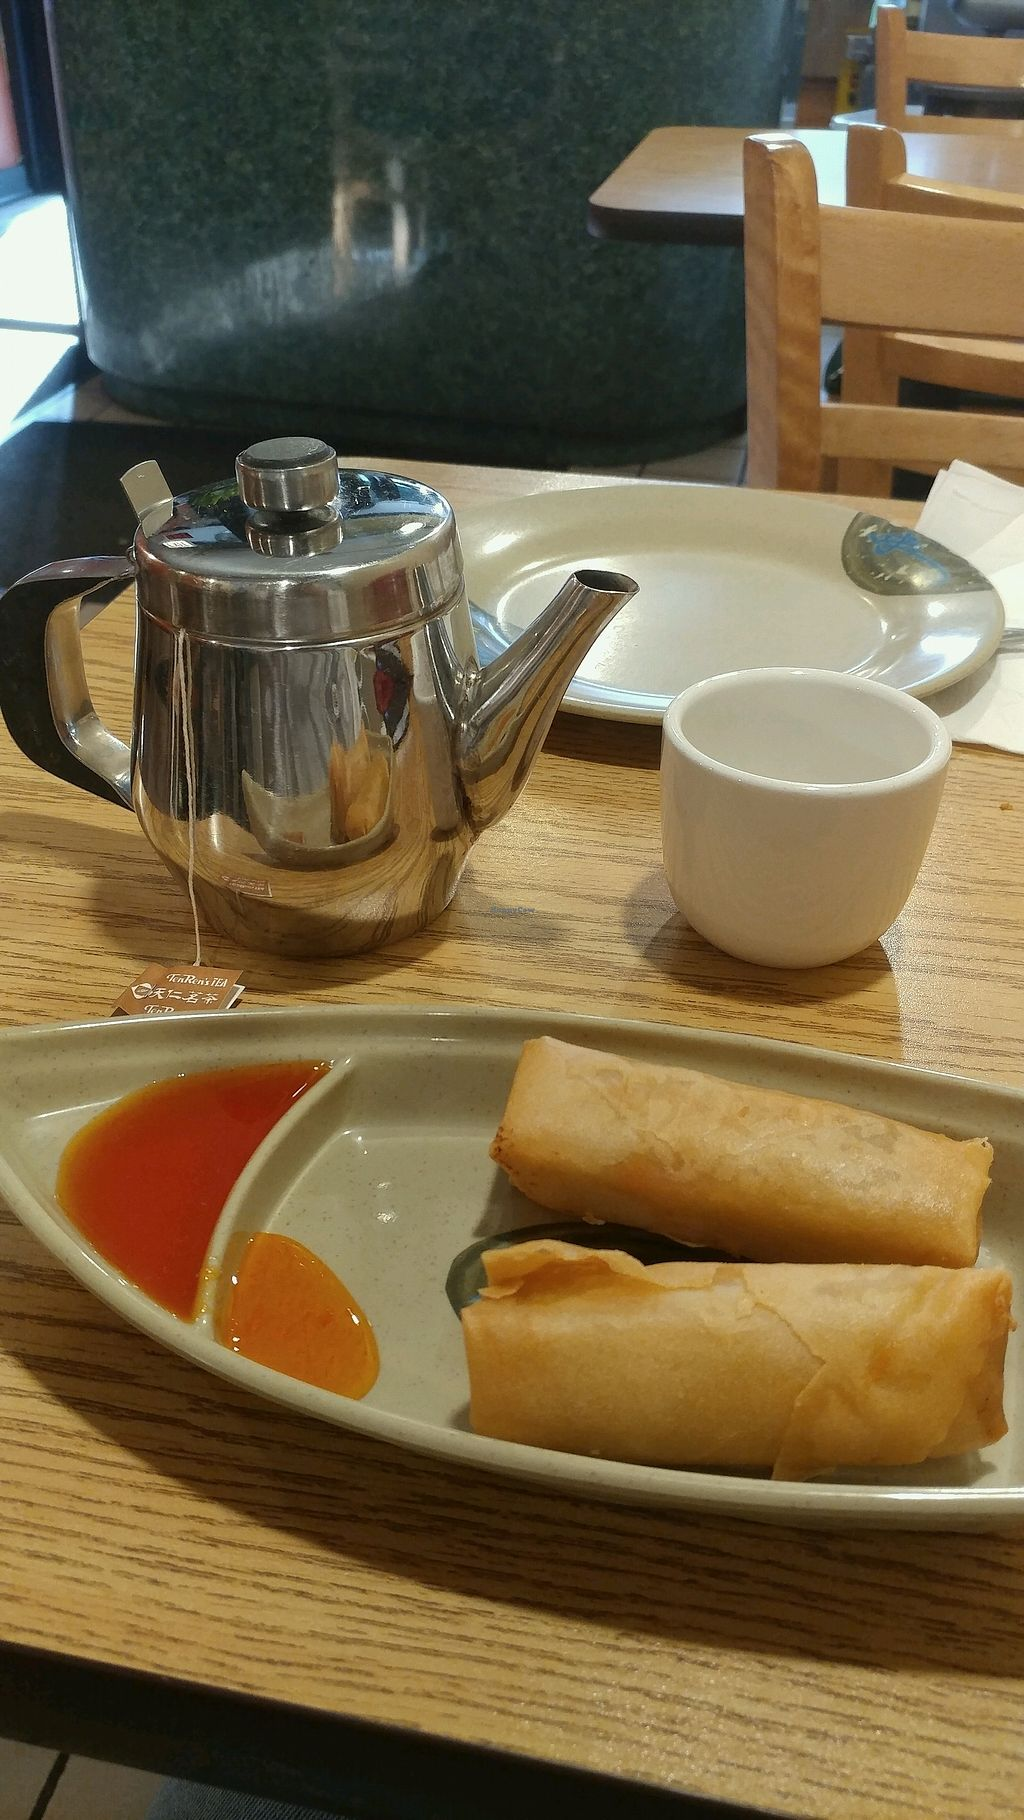 "Photo of Yummy Yummy  by <a href=""/members/profile/mster9ball1"">mster9ball1</a> <br/>hot tea & egg rolls <br/> September 11, 2017  - <a href='/contact/abuse/image/3410/303414'>Report</a>"